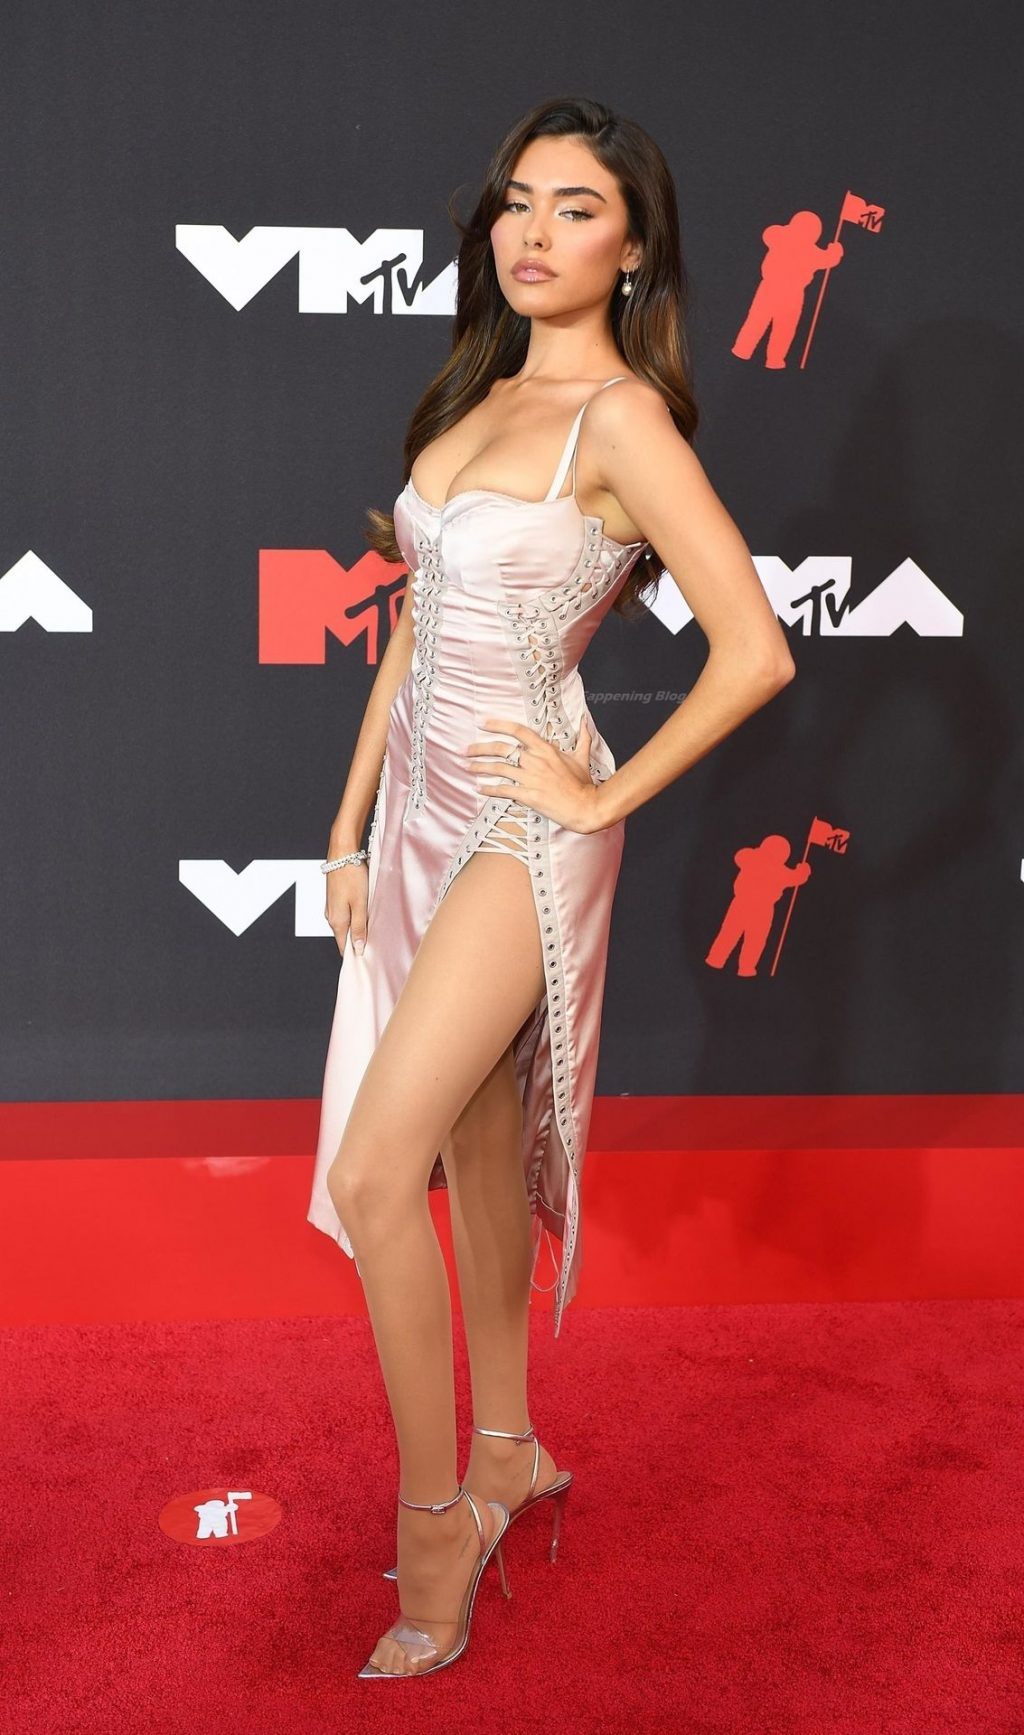 Madison Beer Poses on the Red Carpet at the MTV Video Music Awards (40 Photos)